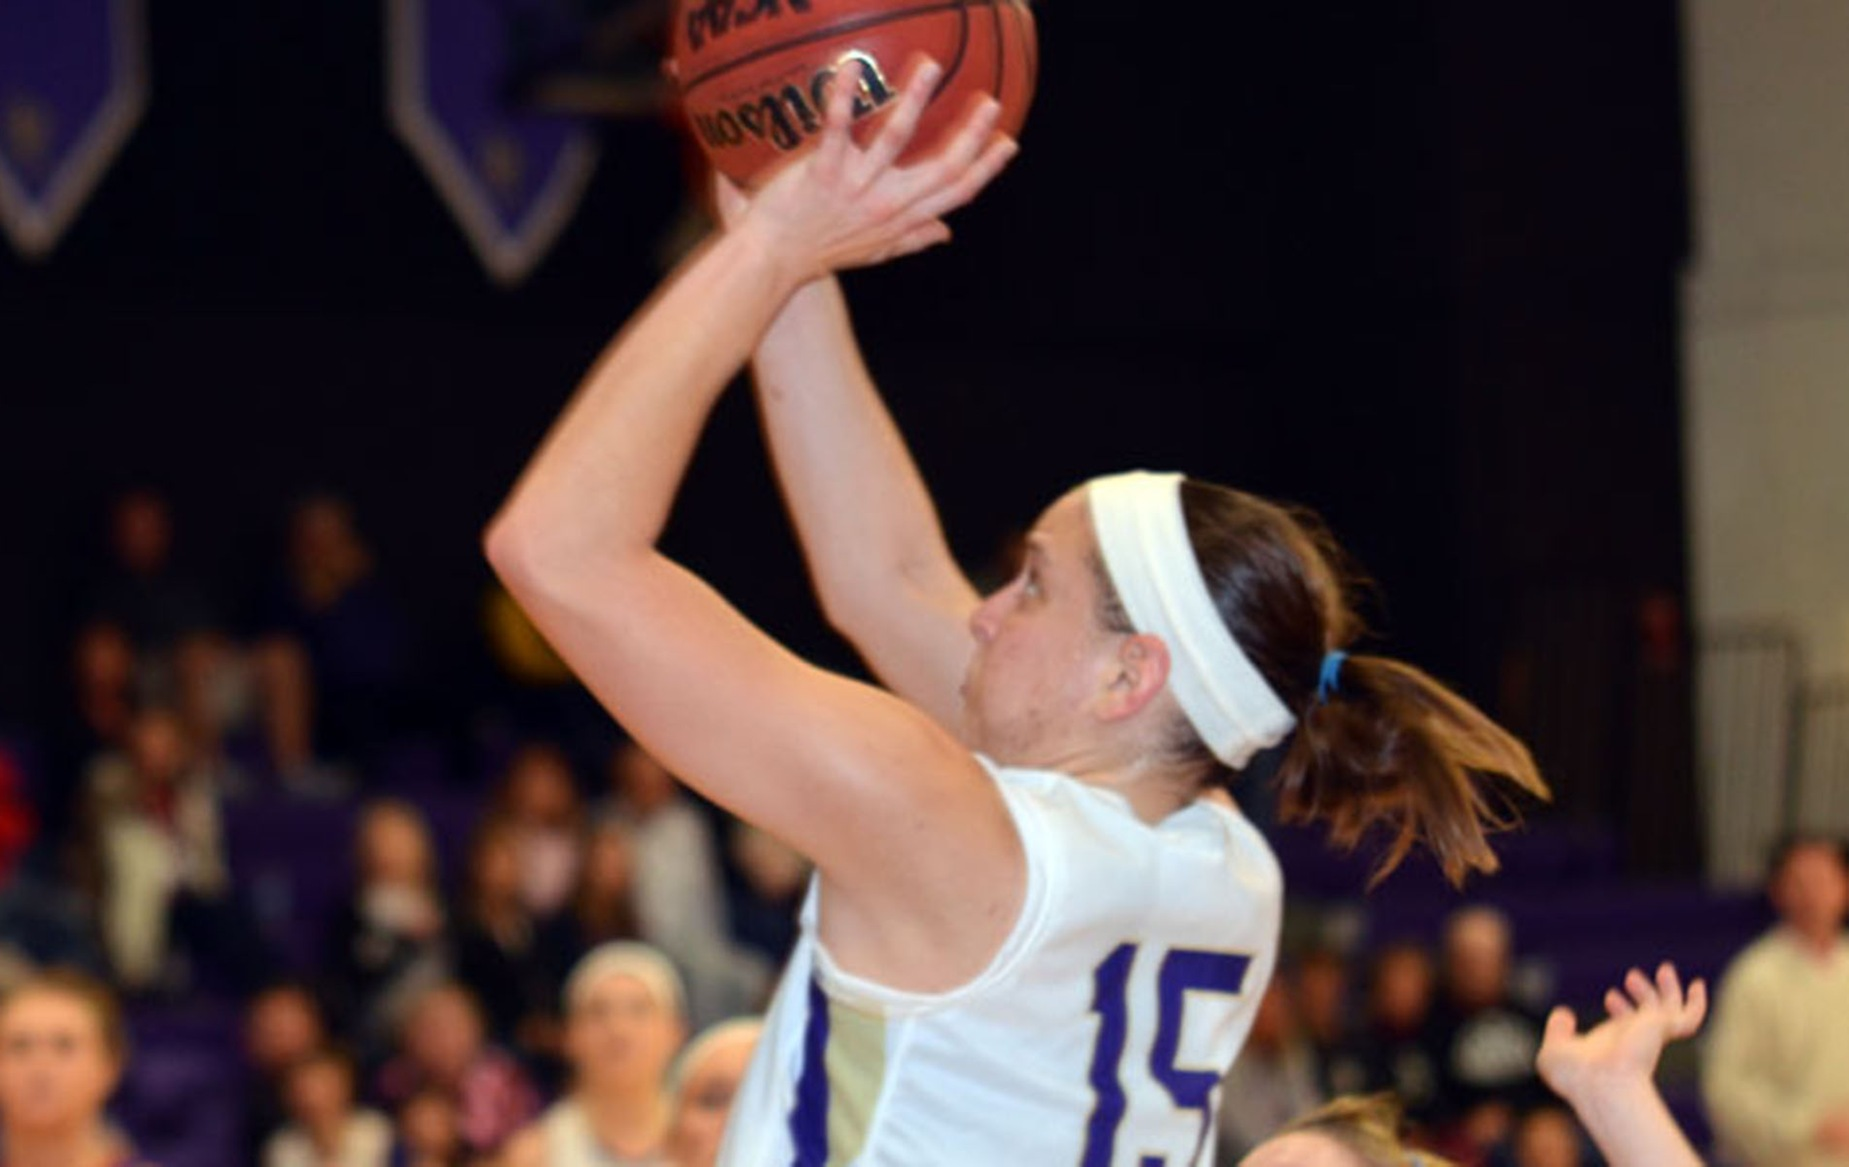 DC Edges Hanover in OT Thriller to Stay Unbeaten in HCAC